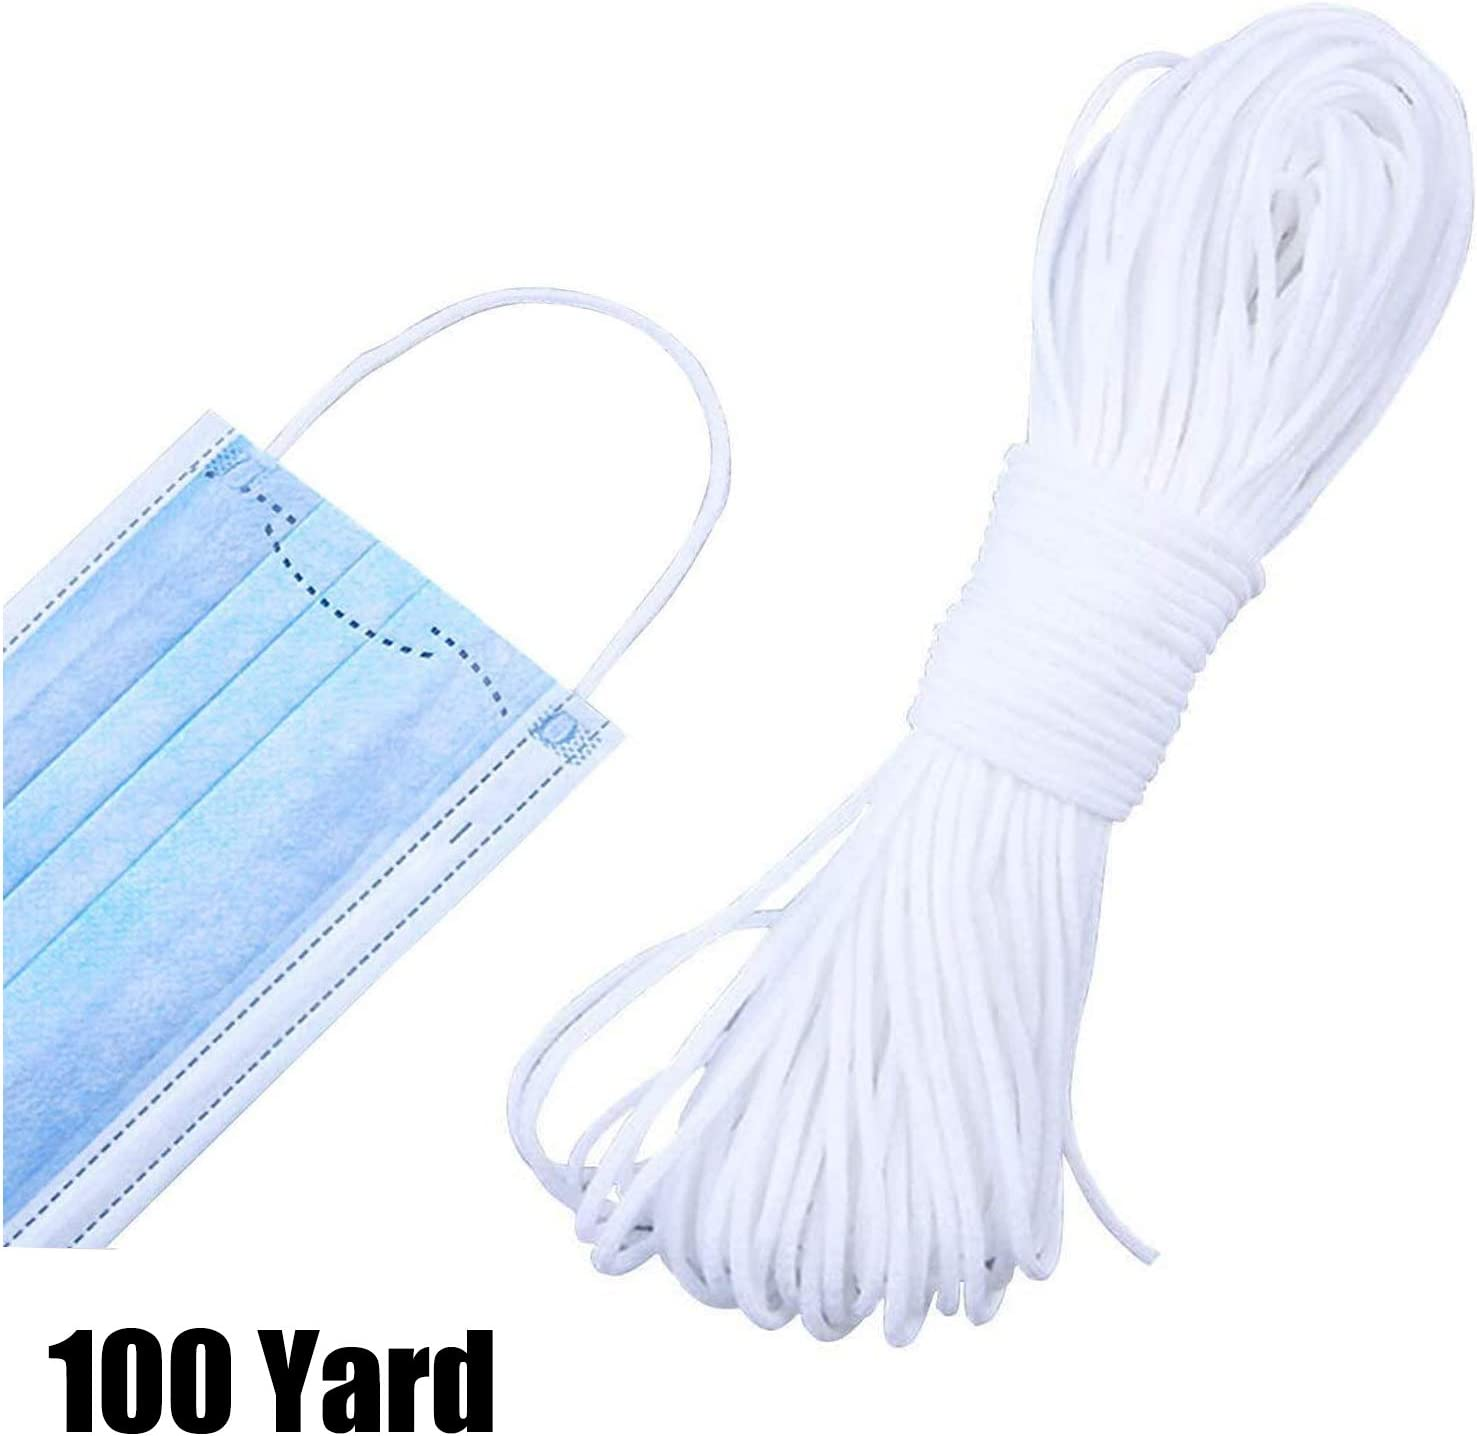 100 Yards, white Elastic Bands for Sewing DIY Ear Band Loop Ear Tie Rope Handmade DIY Craft Round White 1//8 inch Stretchy String Cord 3mm